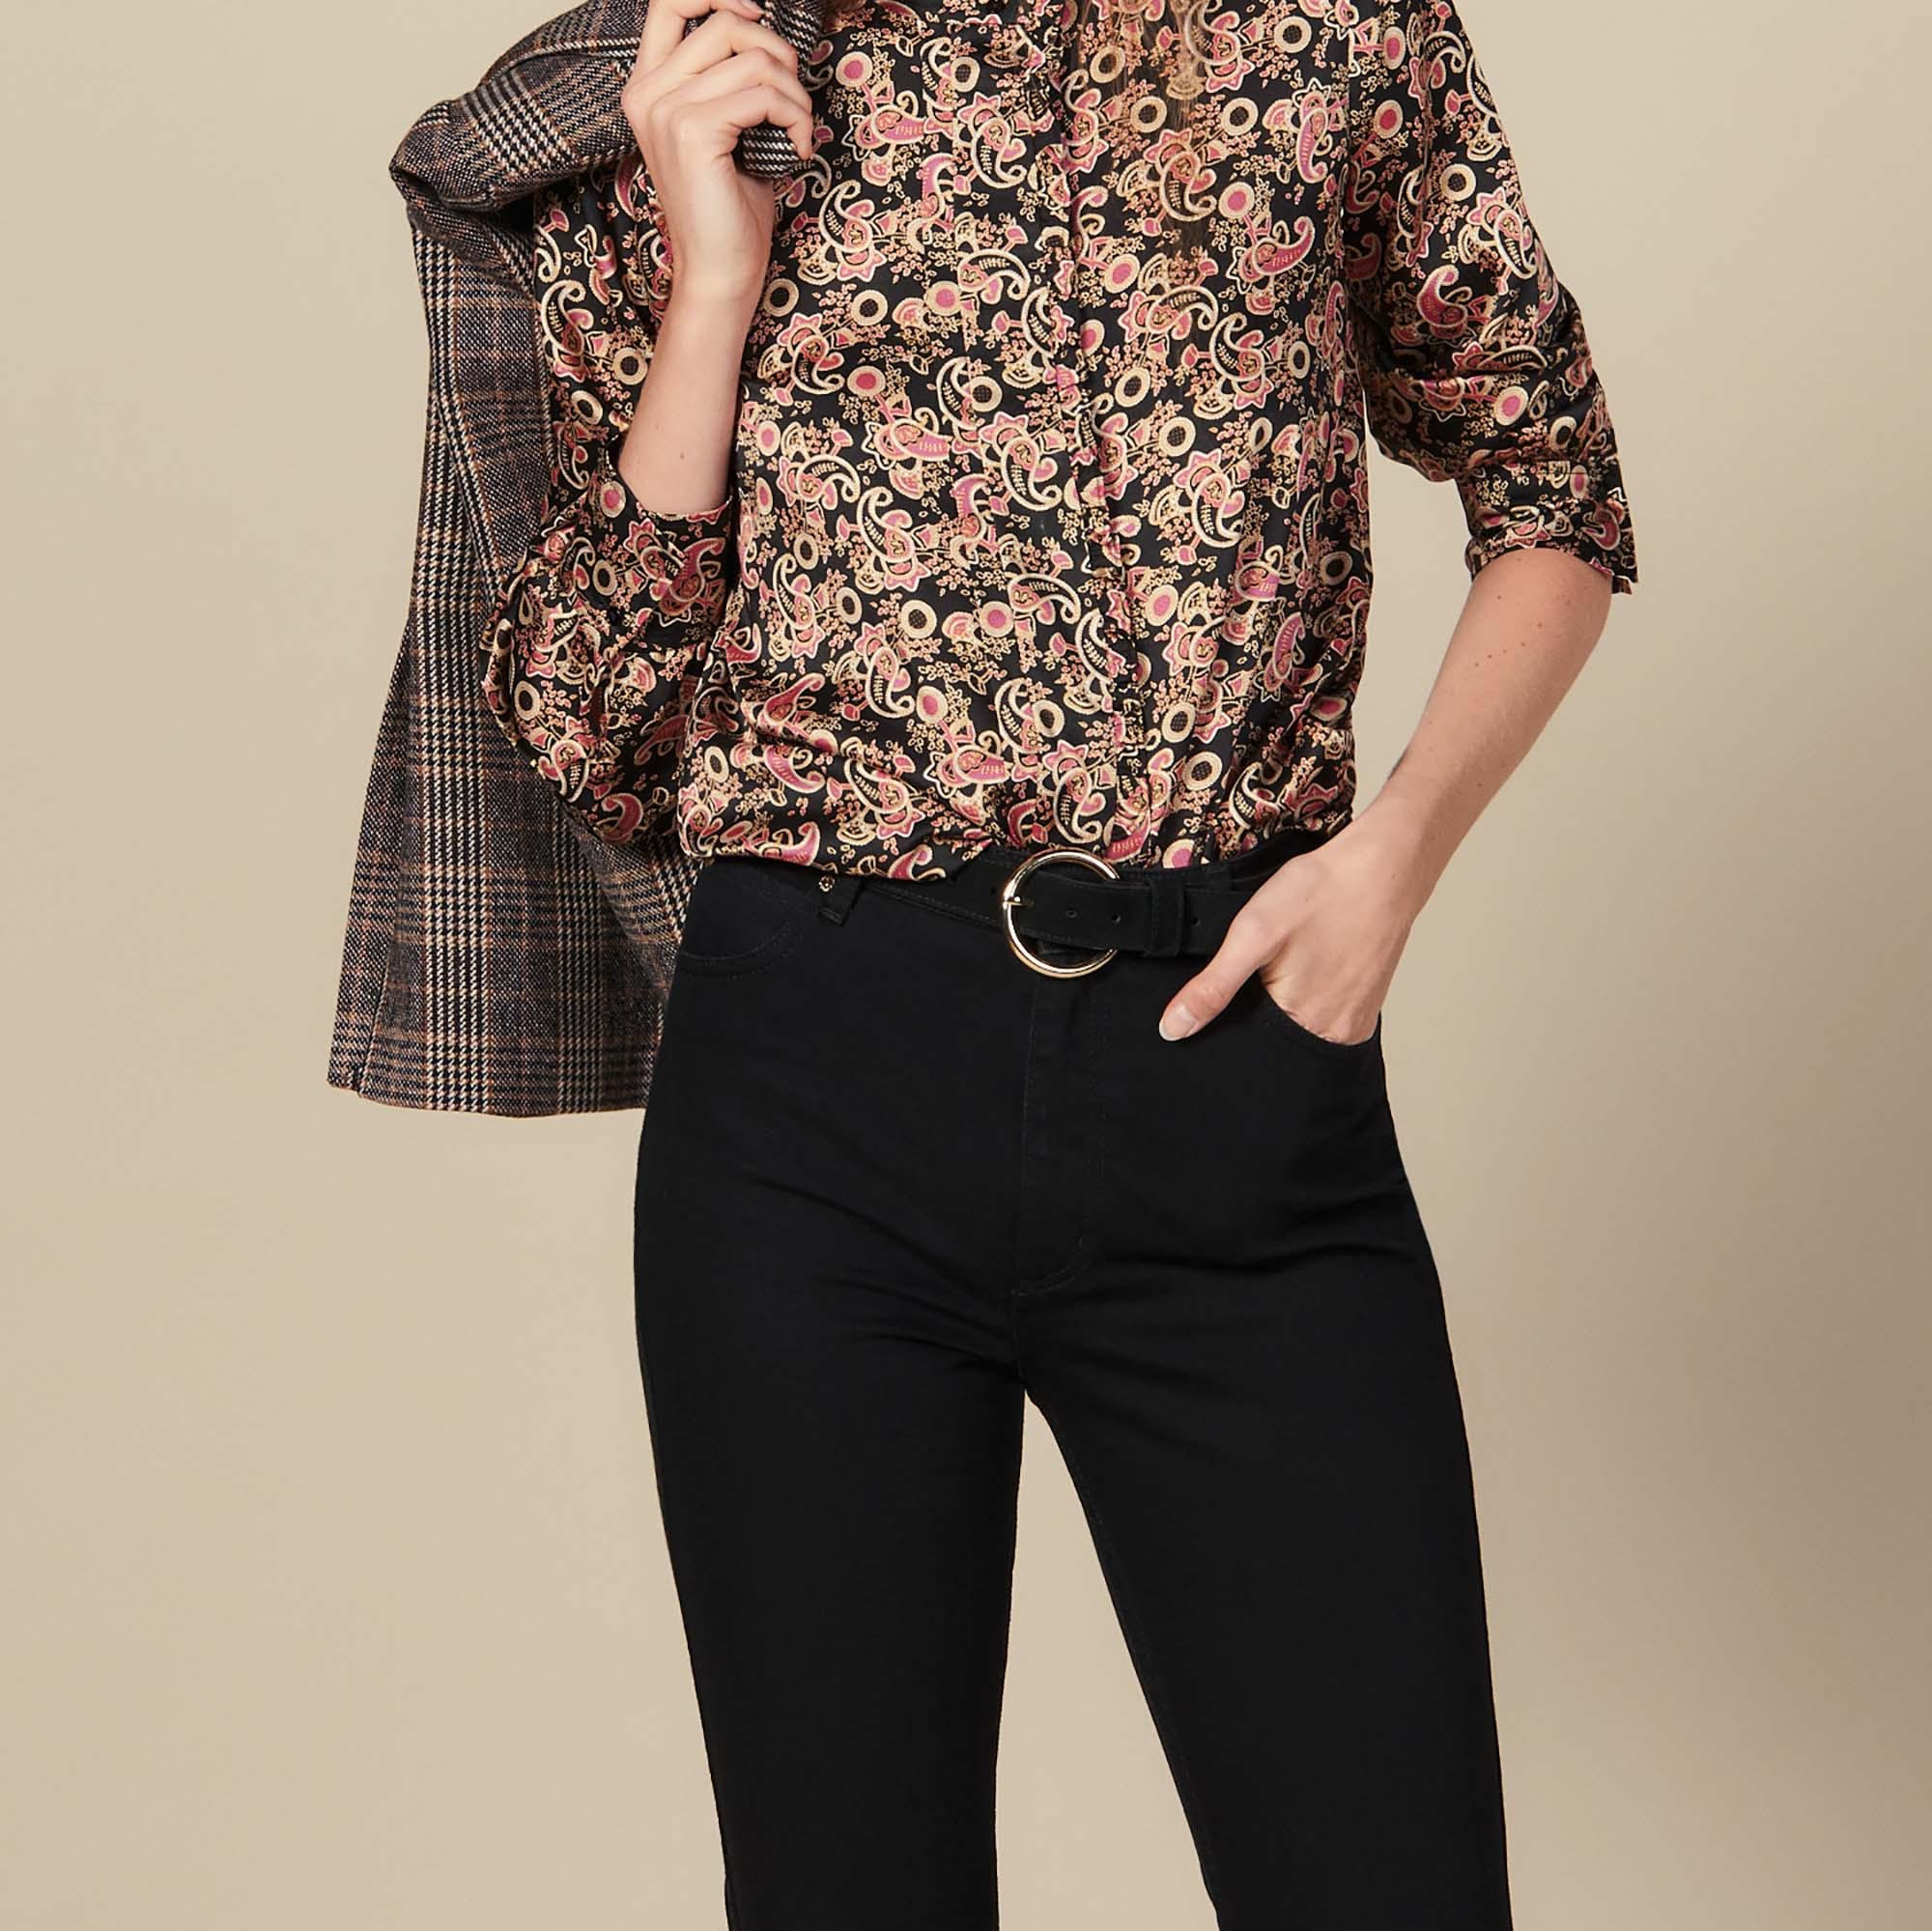 High collar blouse edged with ruffles